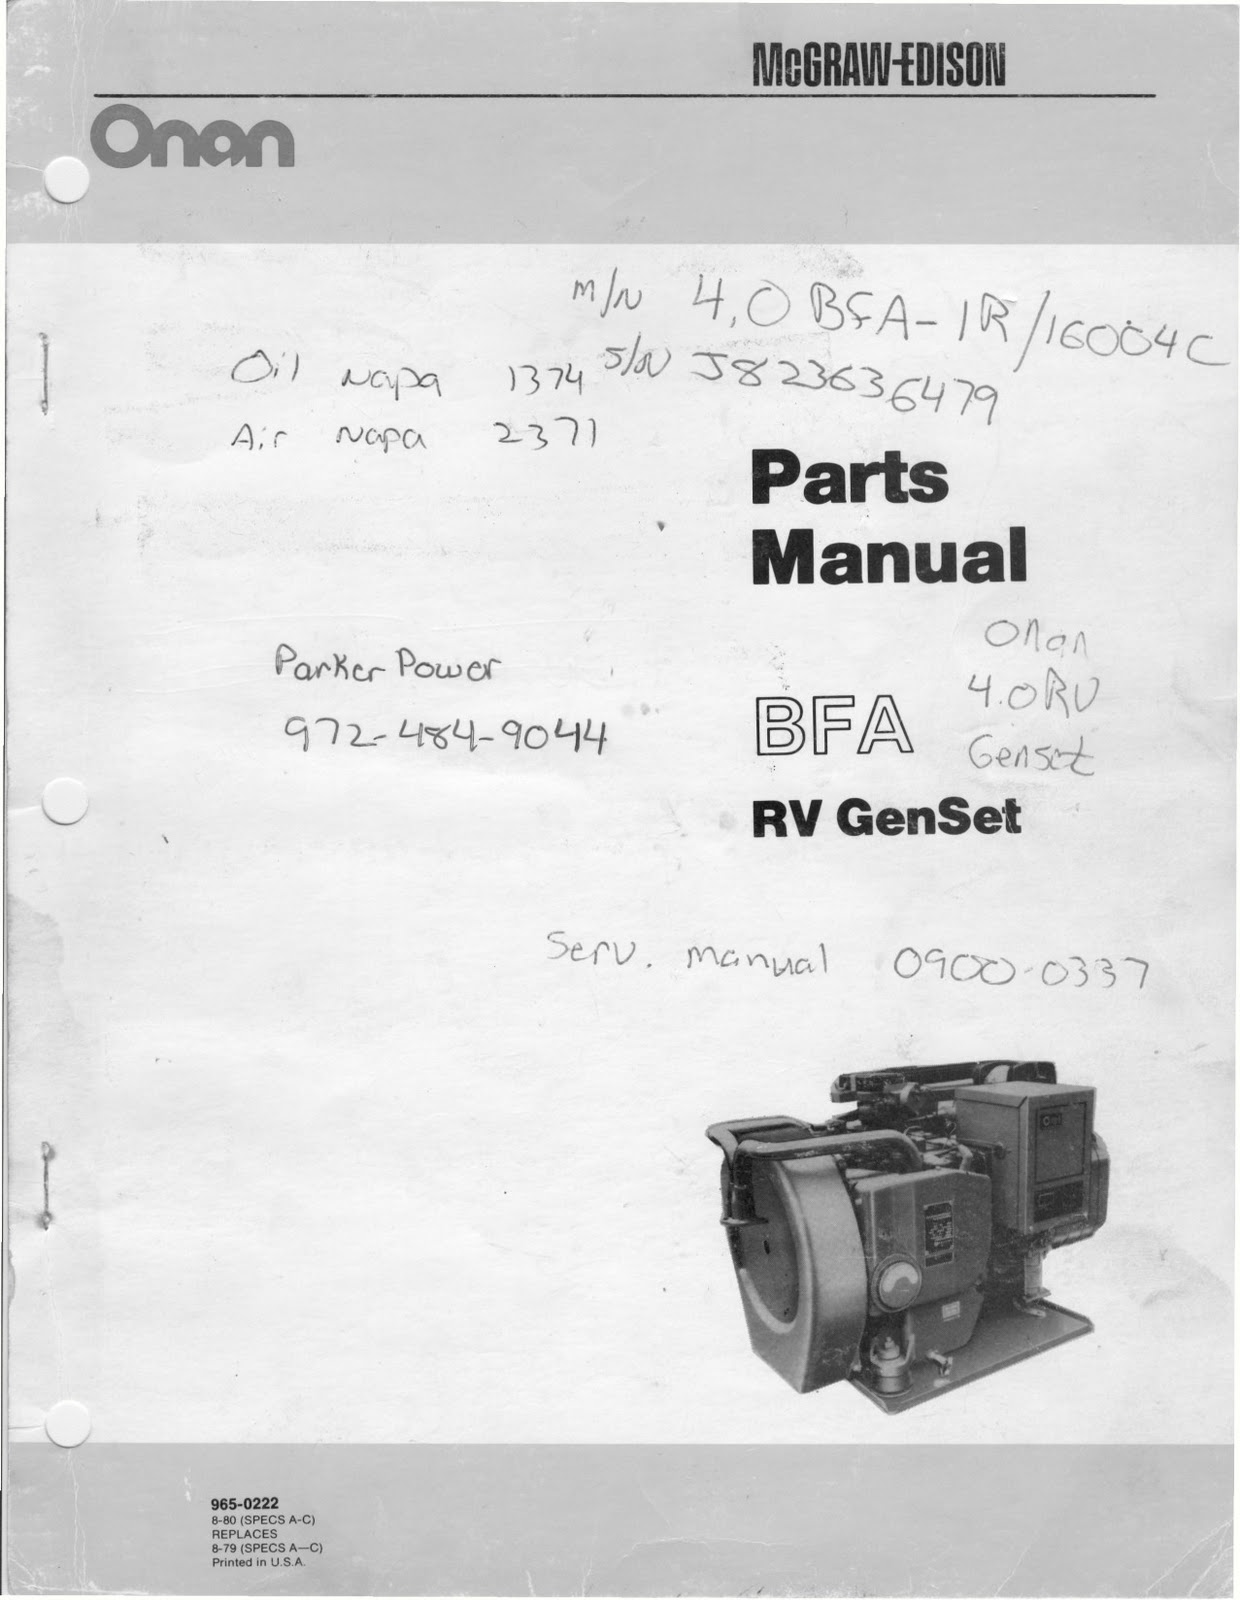 Starting Wiring Diagram For 1988 Pace Arrow Motorhome Manual E Books Rv Battery Disconnect Relay On Slide 1984 All Diagram1984 Parts Www Topsimages Com